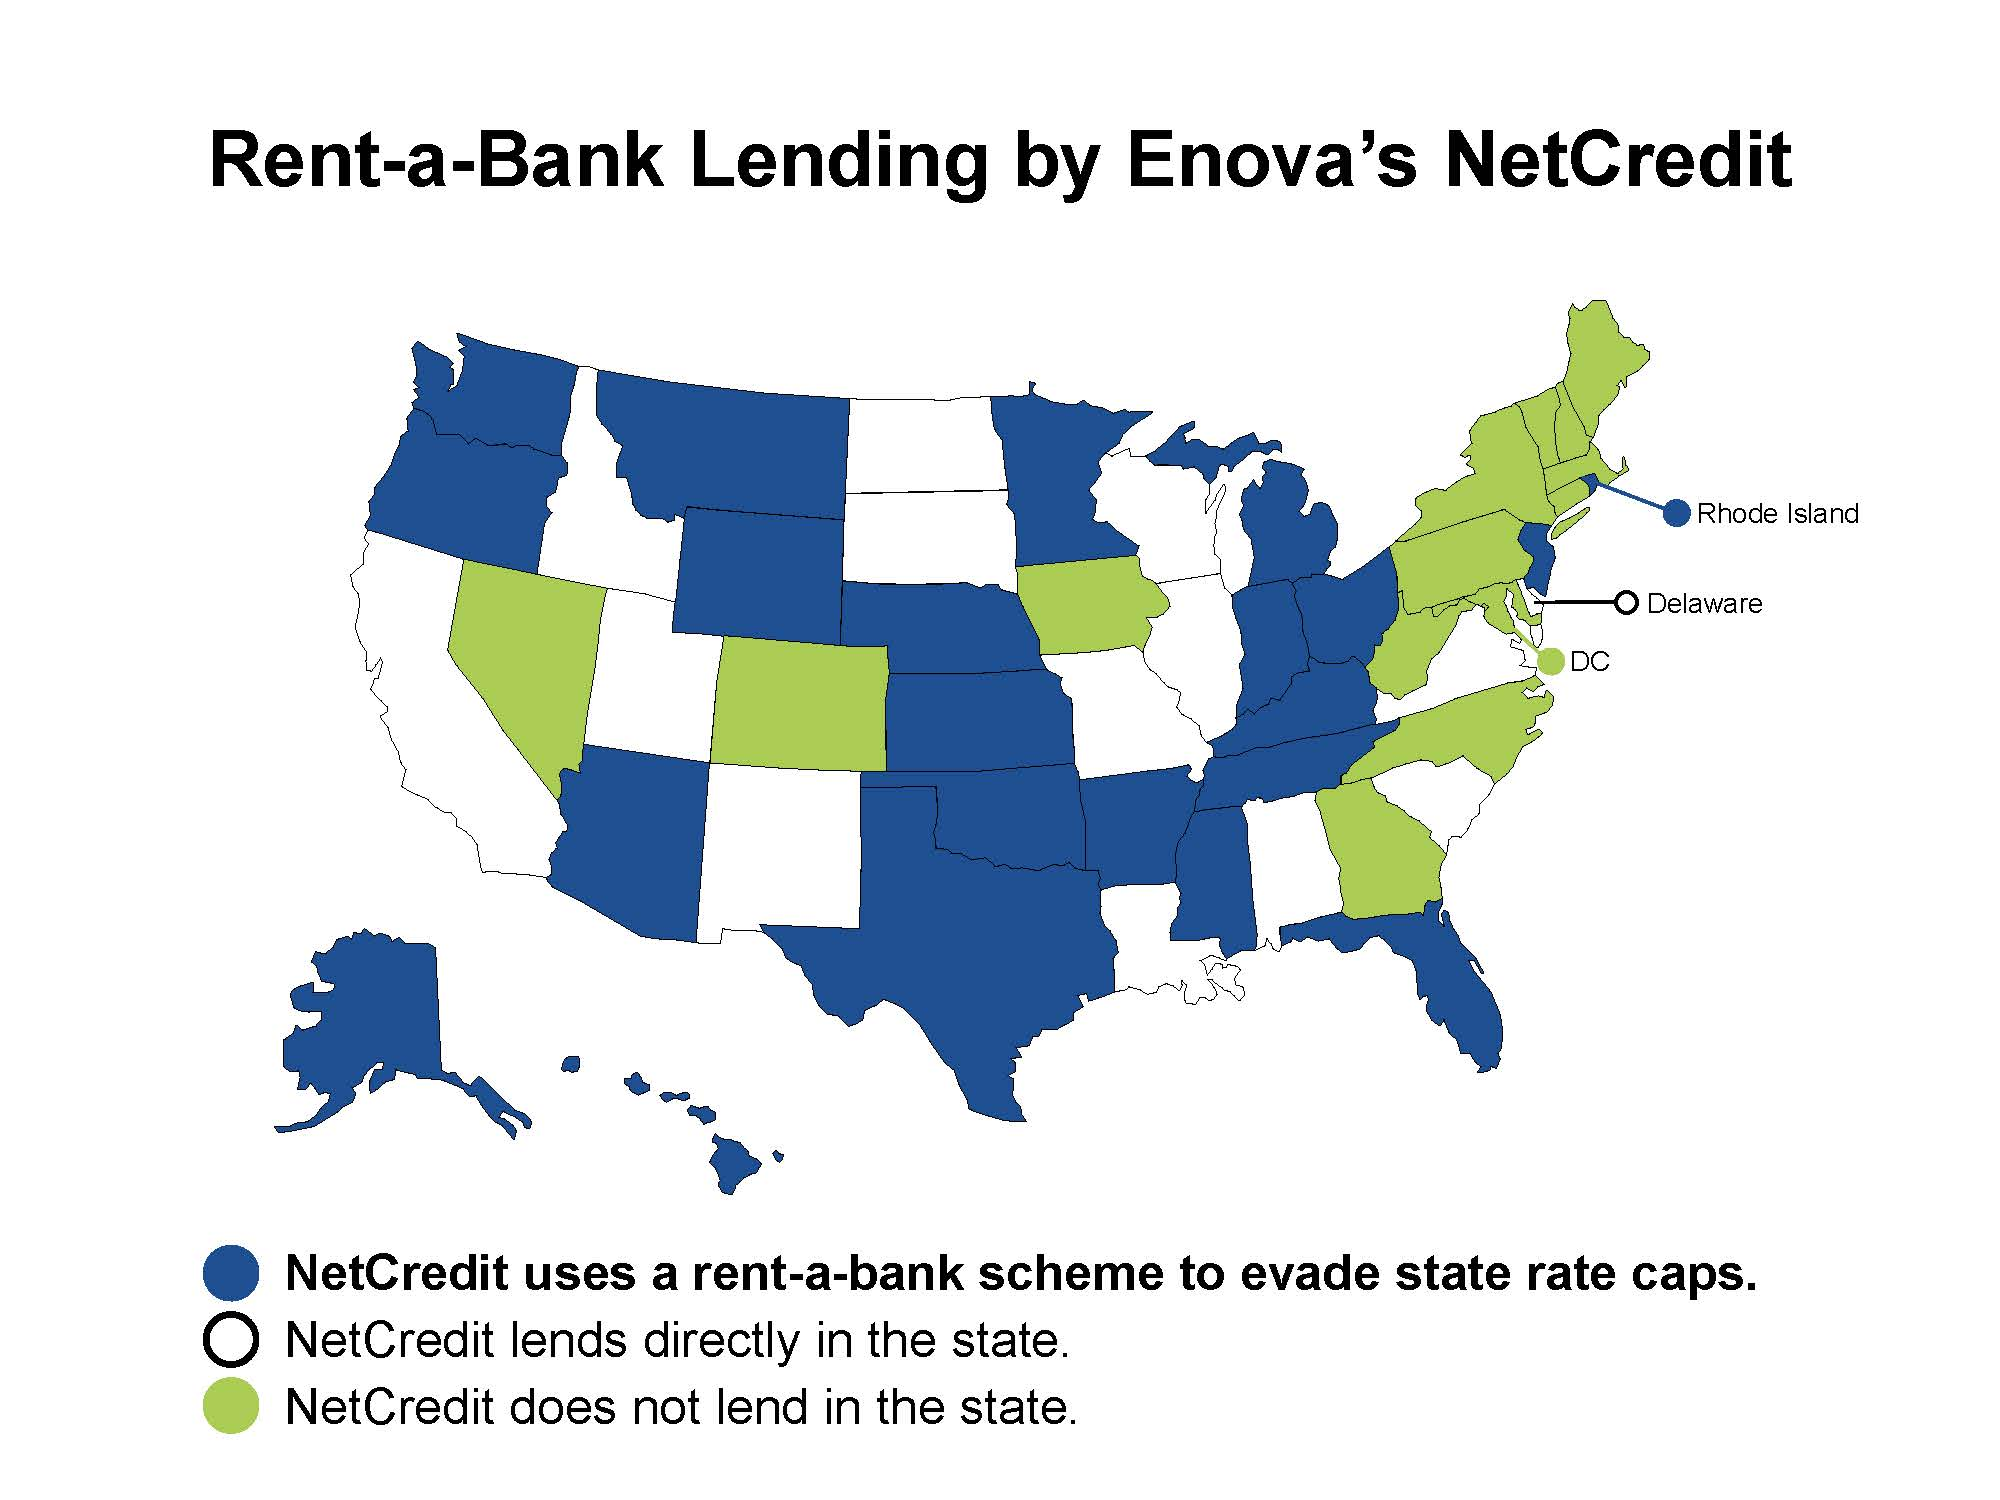 Map of the U.S. in which the states that Enova's NetCredit uses rent-a-bank schemes to avoid state rate caps are colored in blue. States in which Enova's NetCredit directly lends are white, while the states in which the organization does not lend are in green.